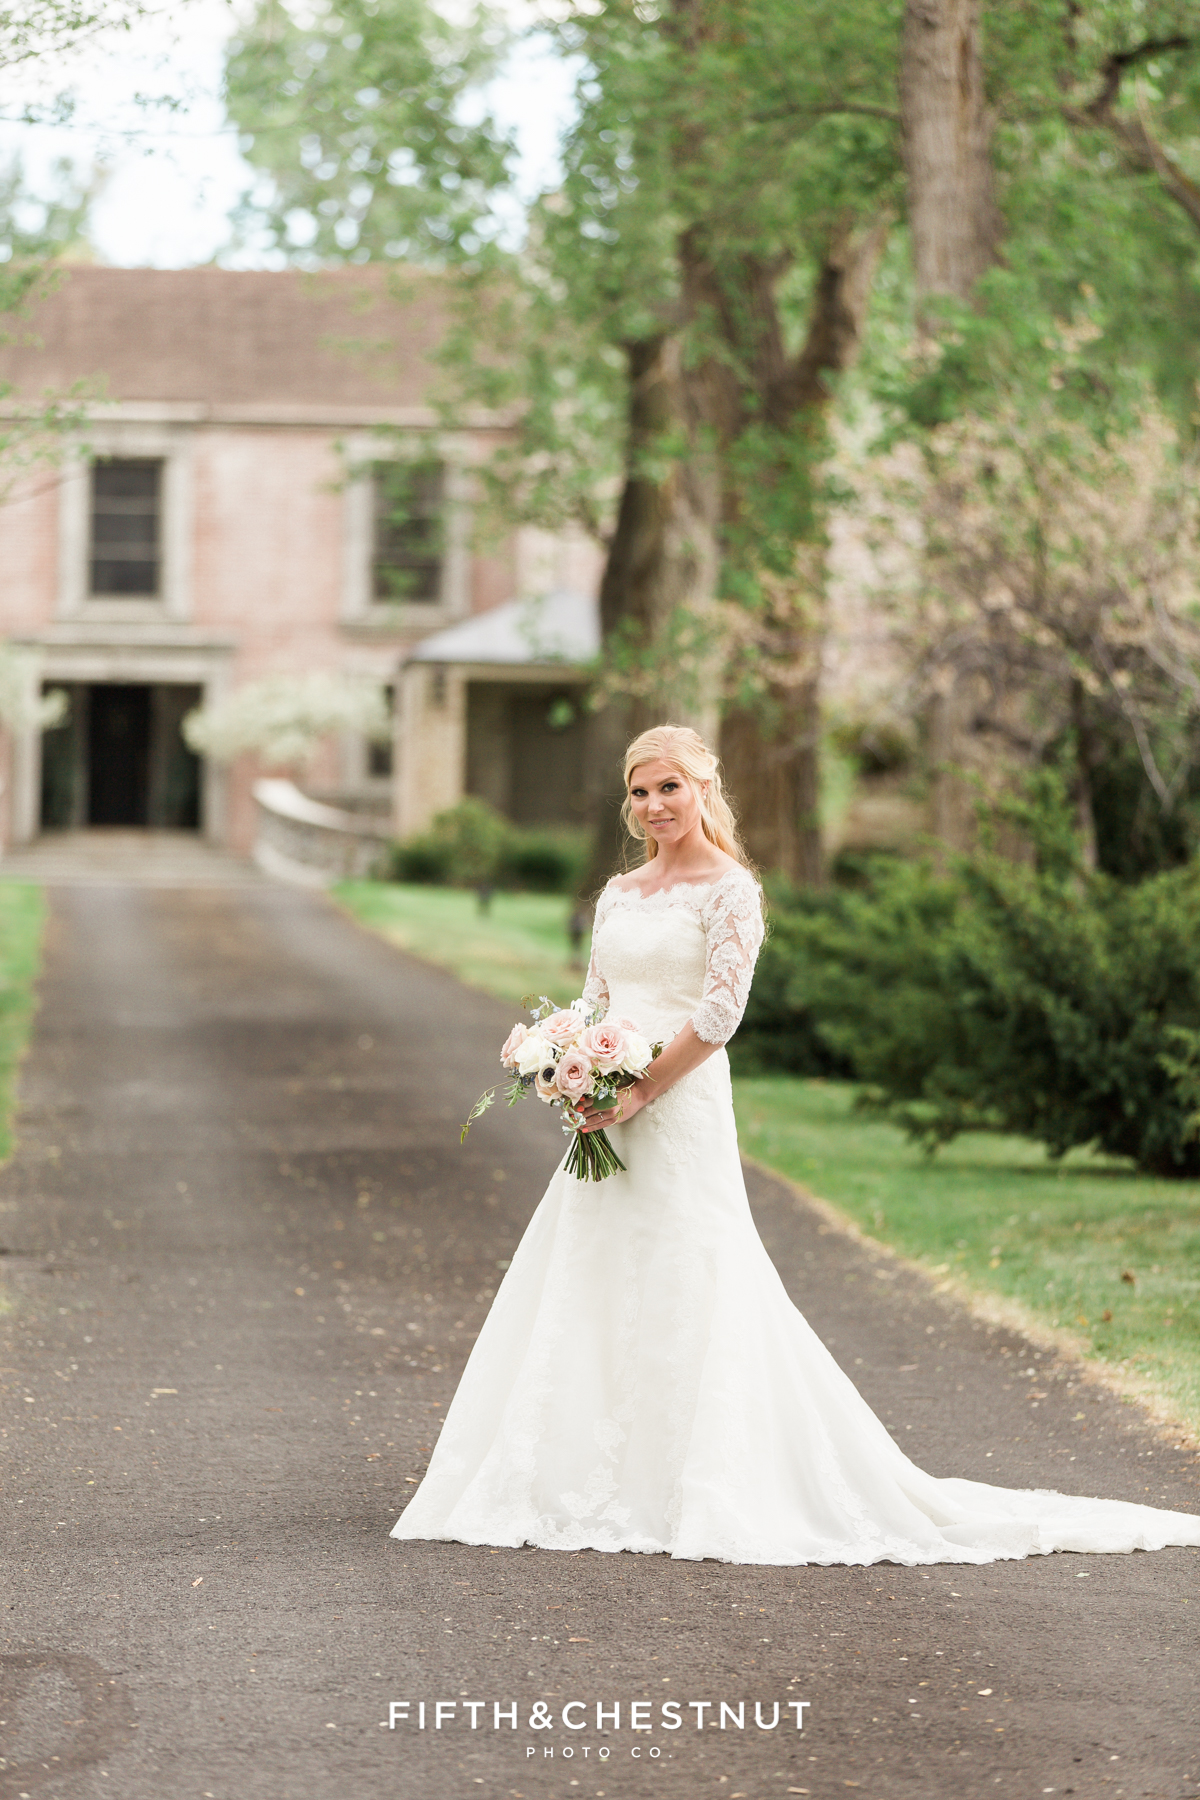 Happy bride in lace dress standing in an oak-lined pathway leading to a stone and brick private estate